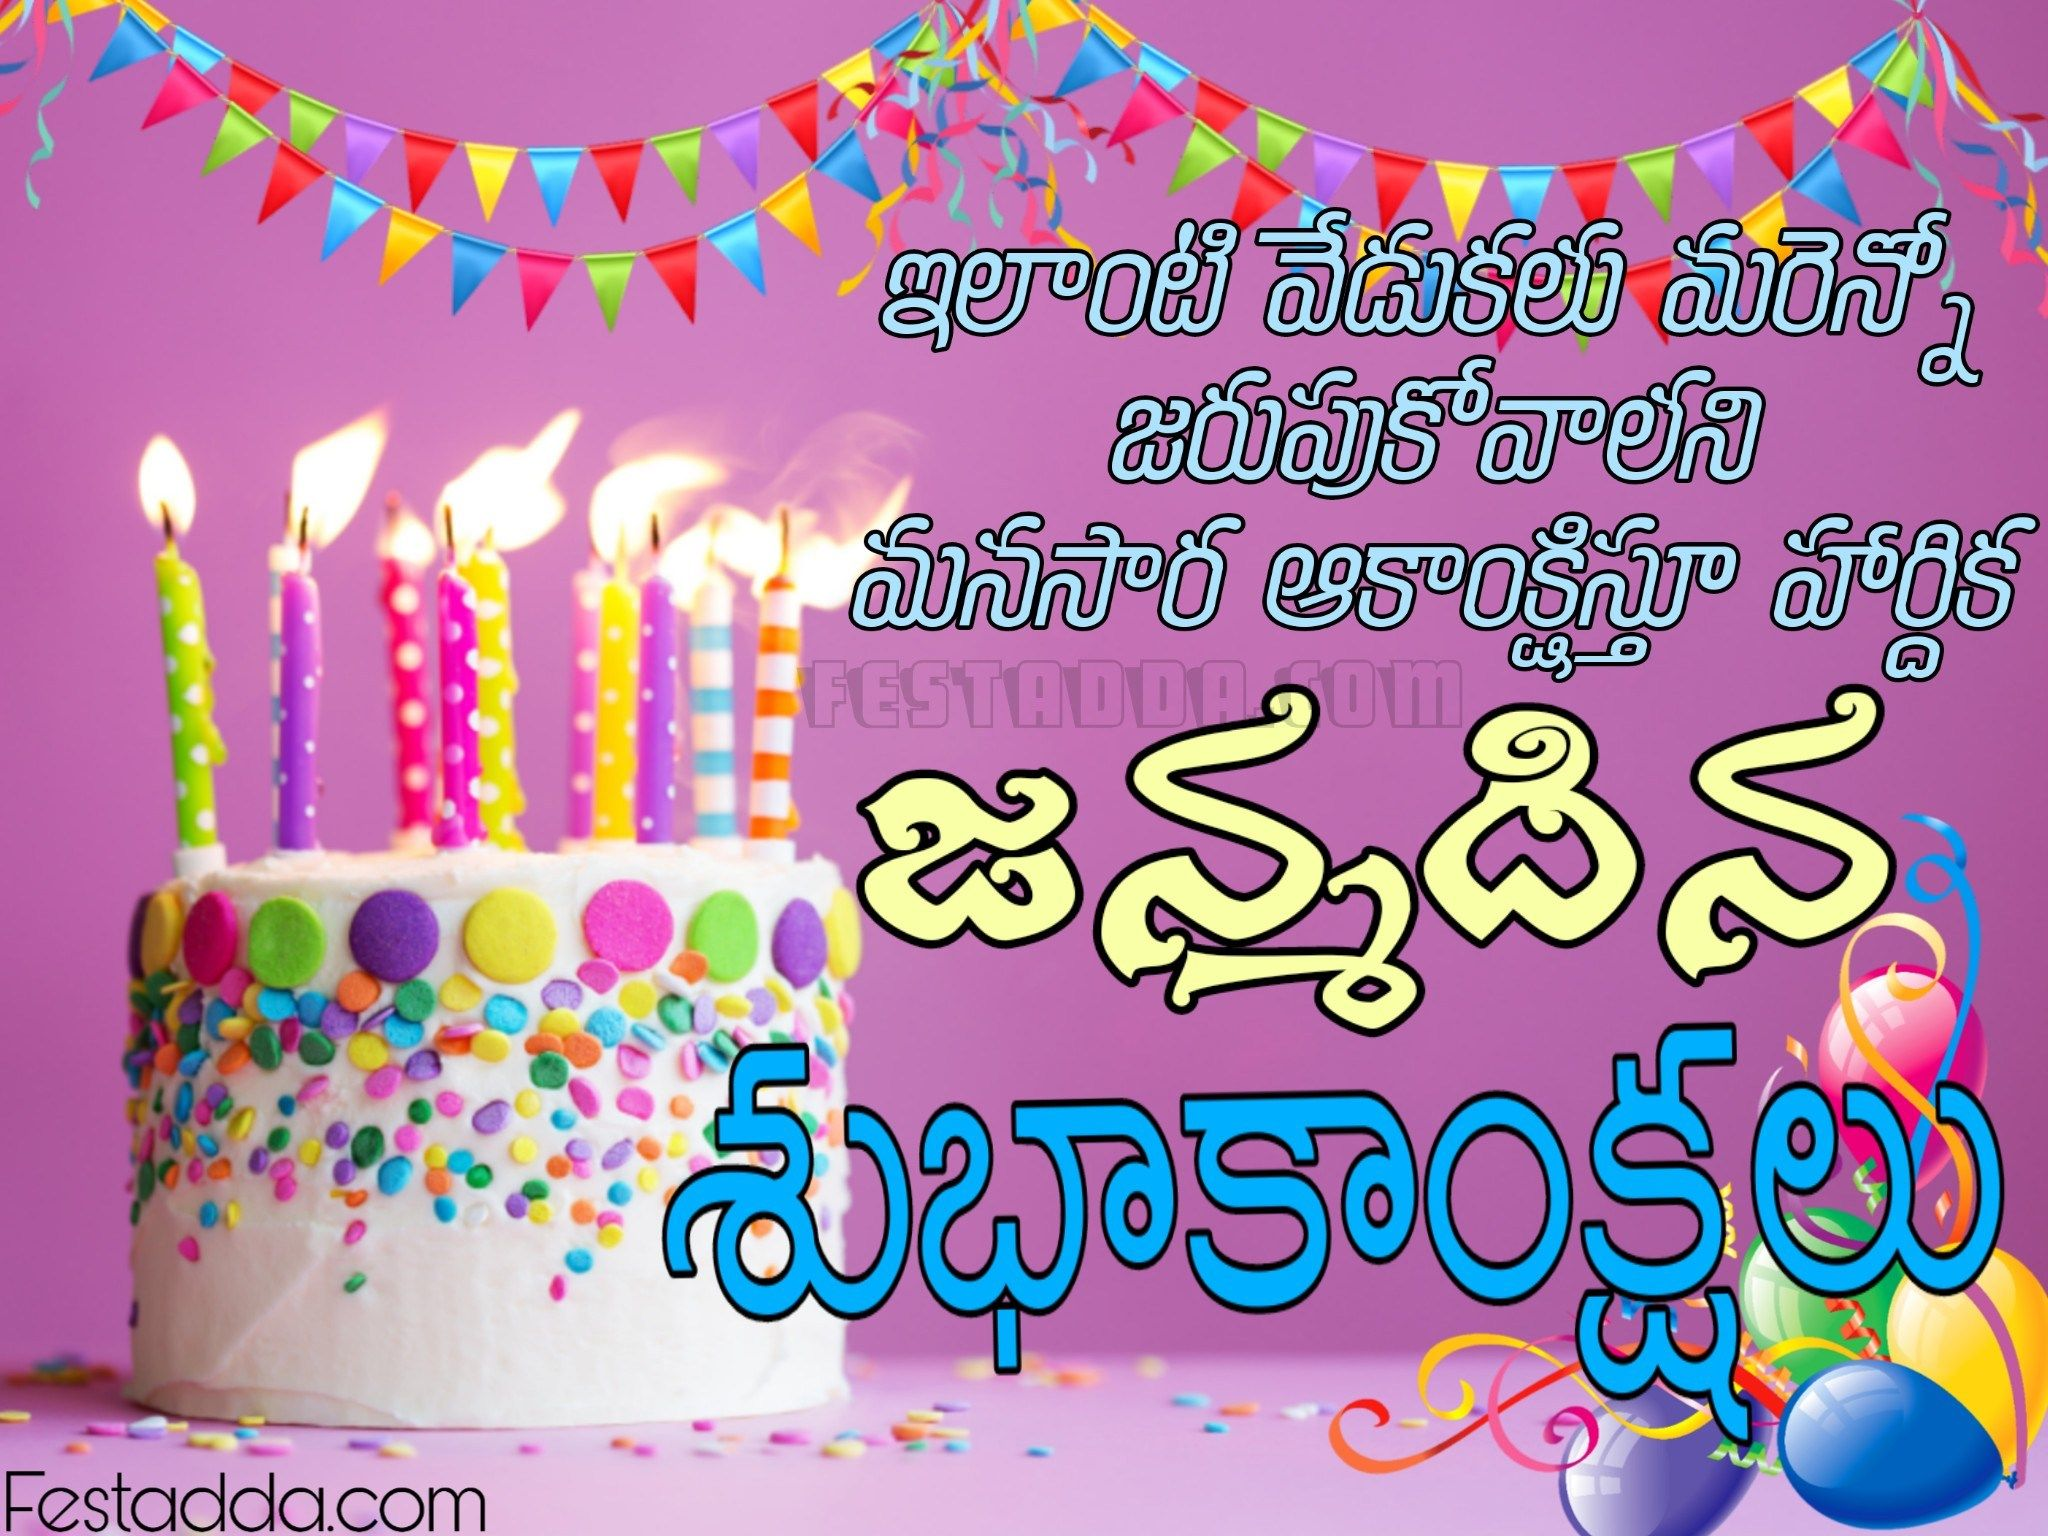 Happy Birthday Wishes In Telugu Font Janmadina Subakhanshalu